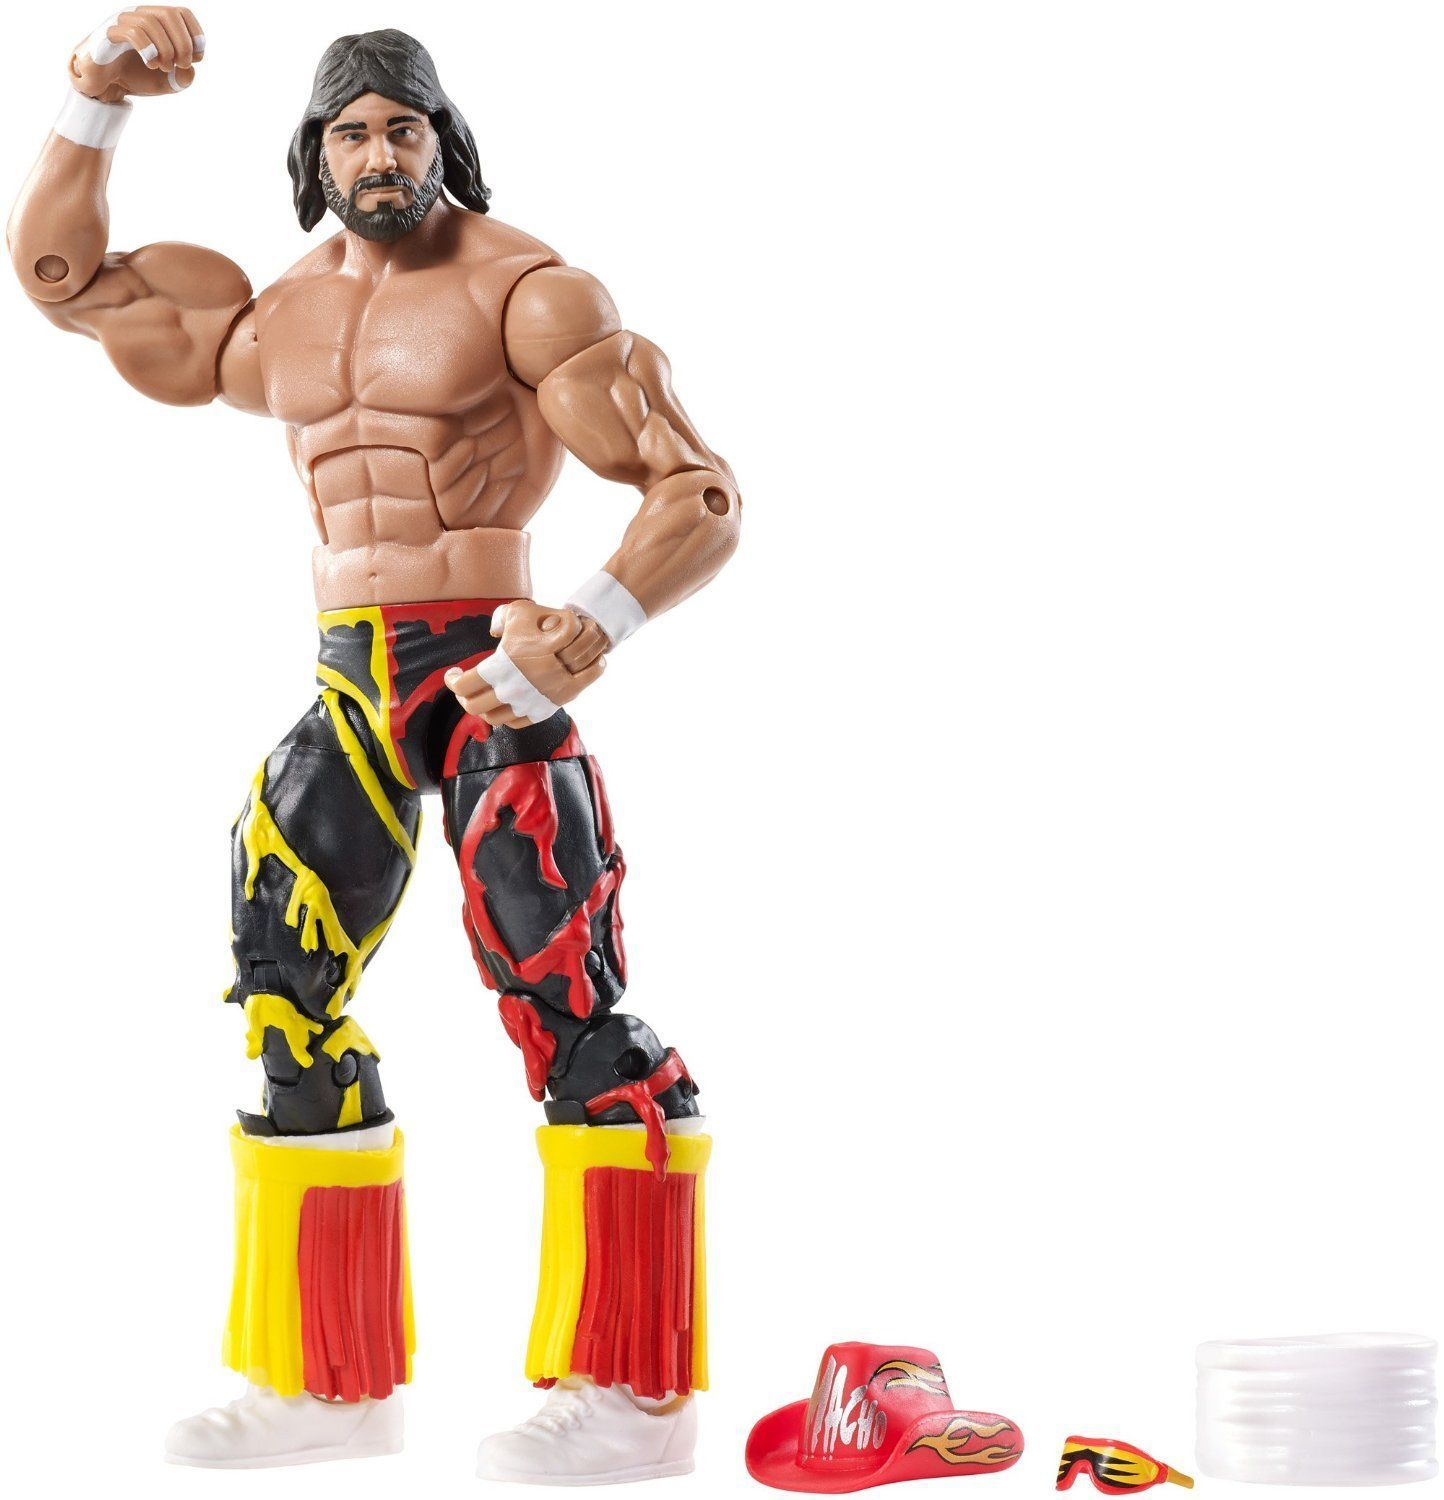 Wrestling Toys For Boys : Wwe elite collection action figure series macho man